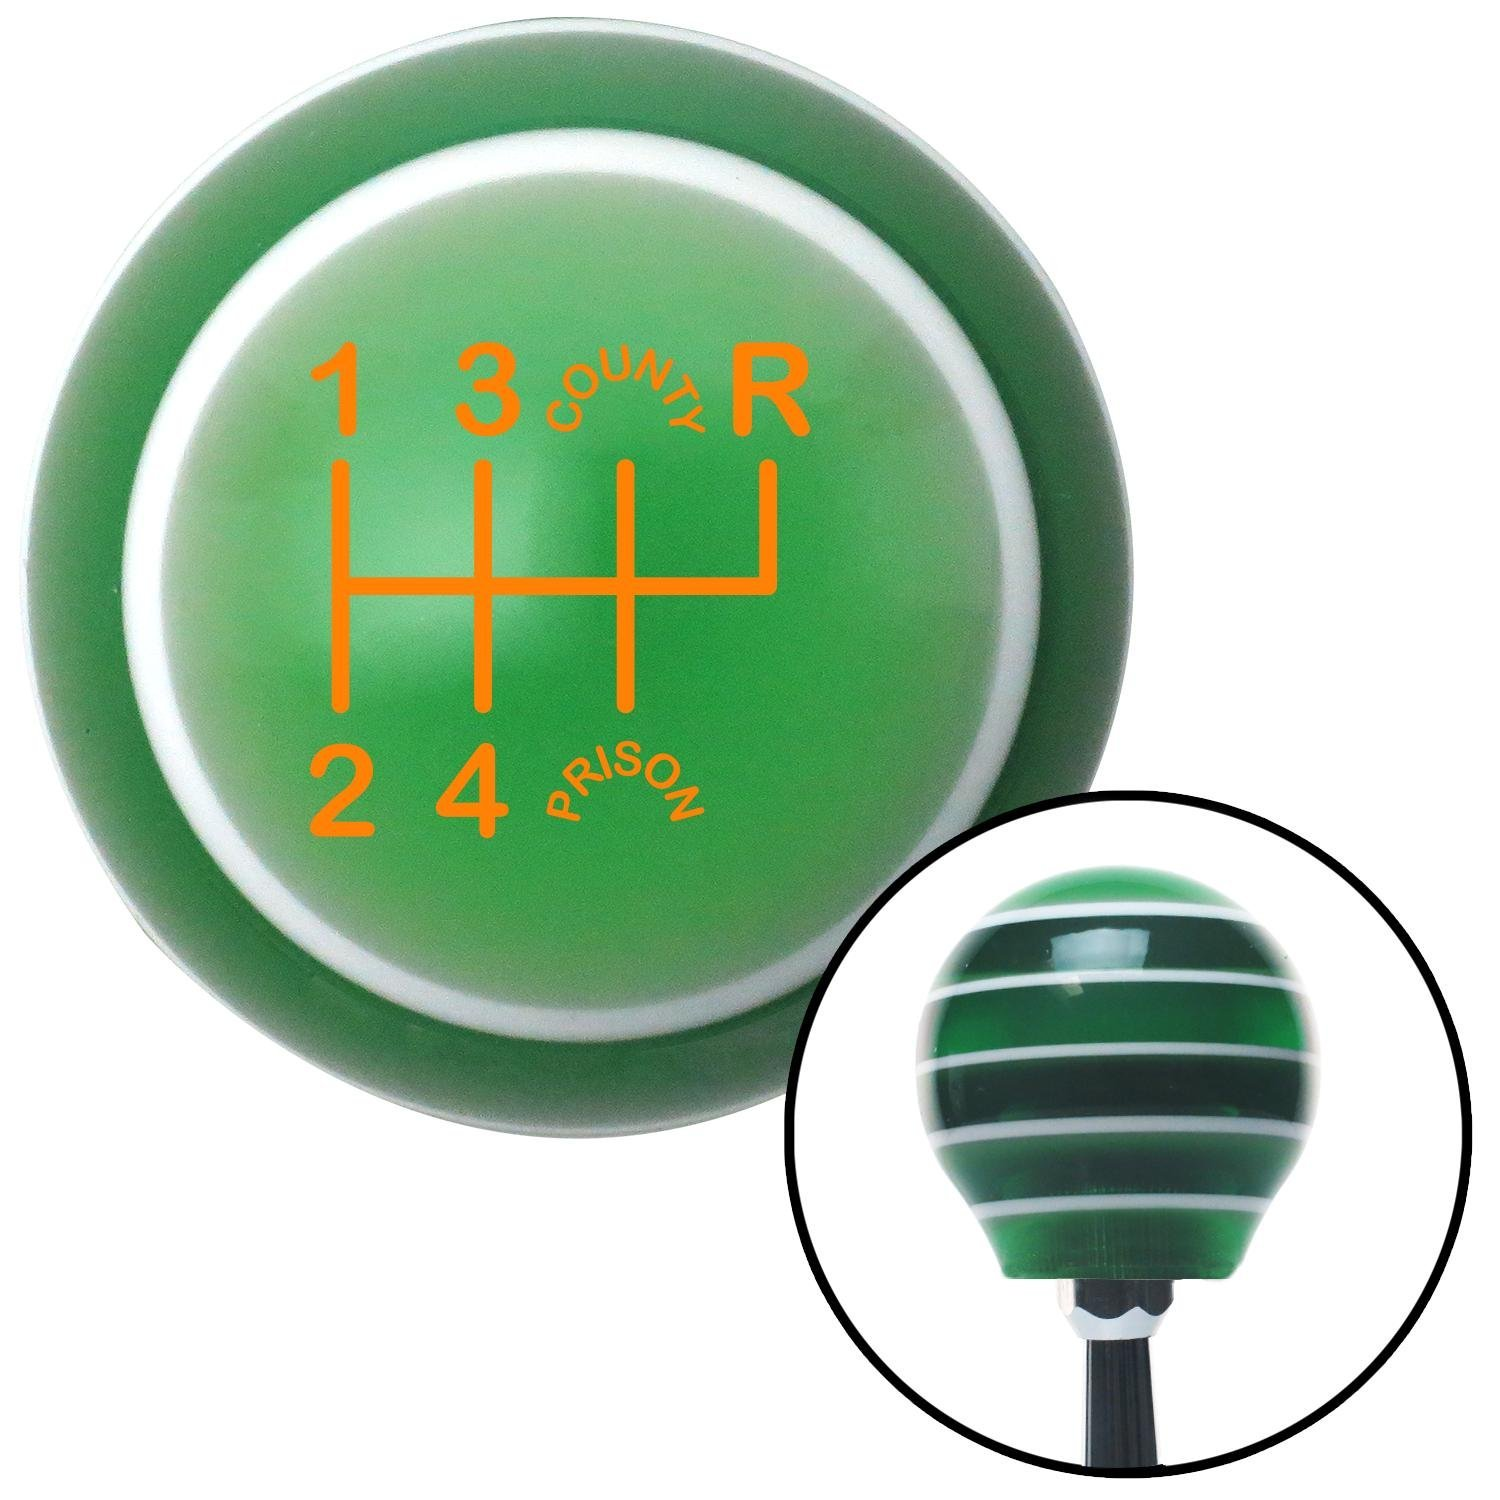 American Shifter 127440 Green Stripe Shift Knob with M16 x 1.5 Insert Orange Shift Pattern CP26n